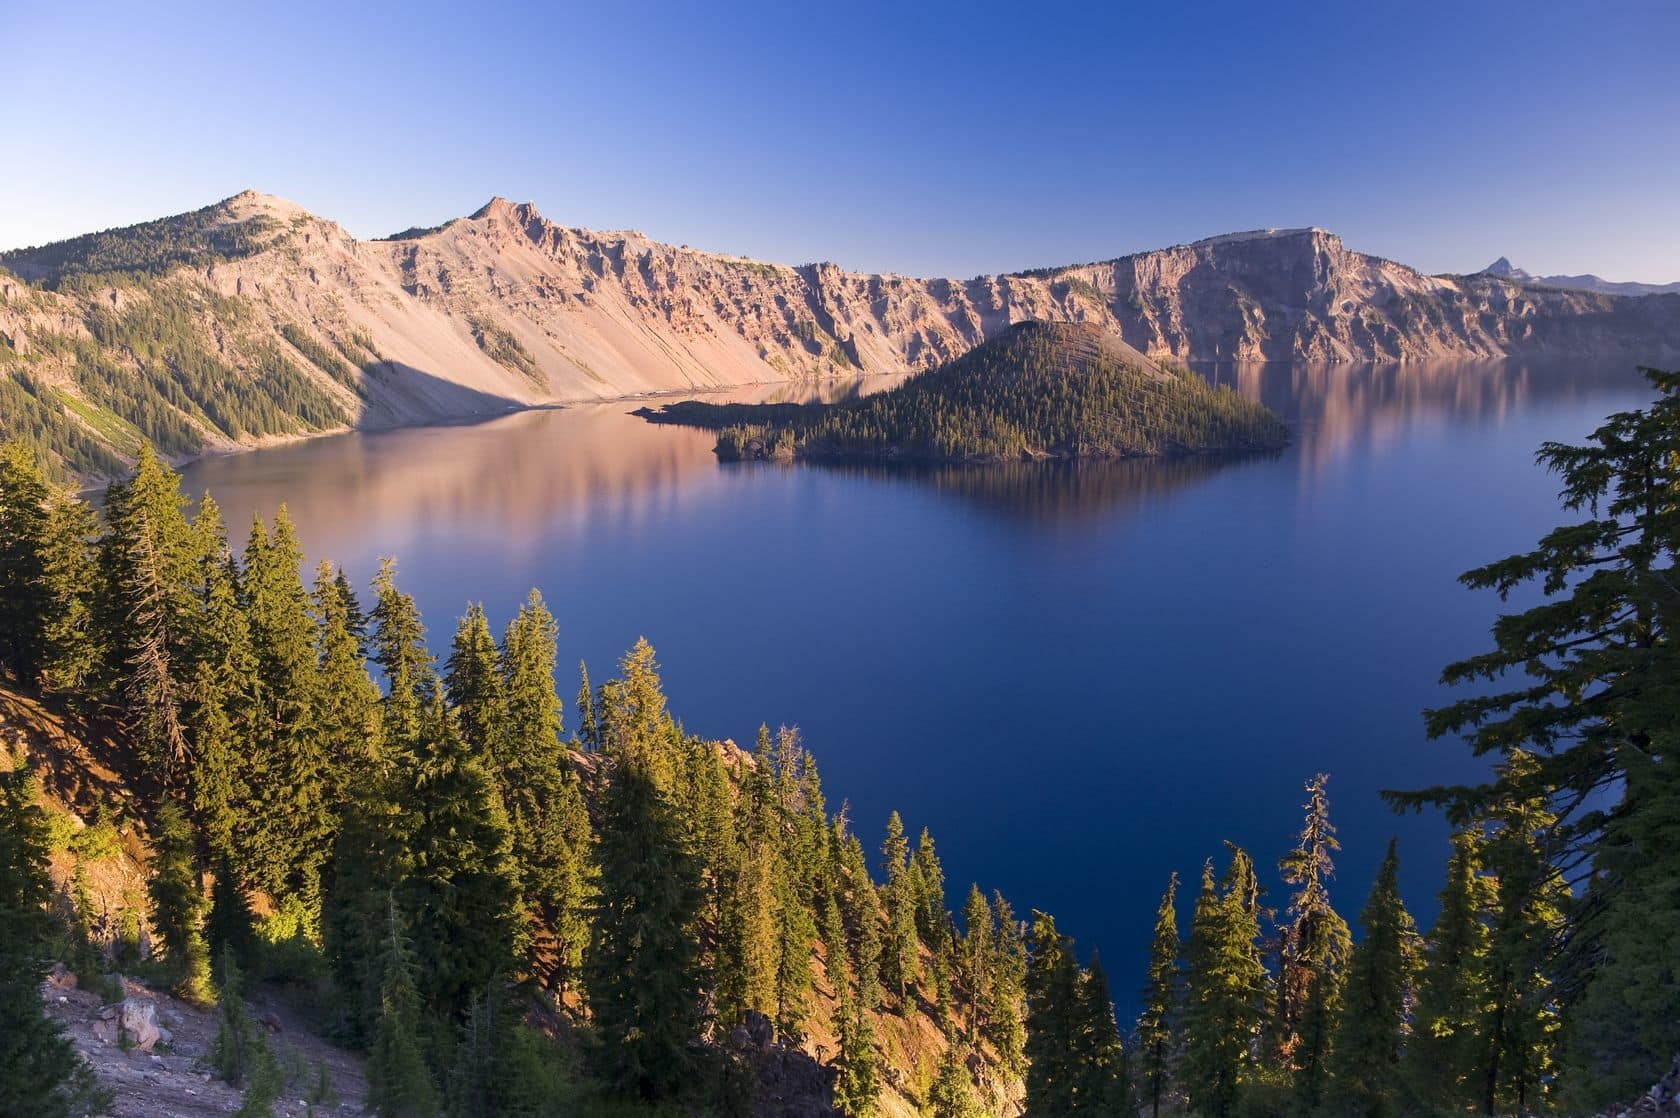 crater lake oregon volcano fish places sunrise national unique parks fishing kayaking most orange ml preview